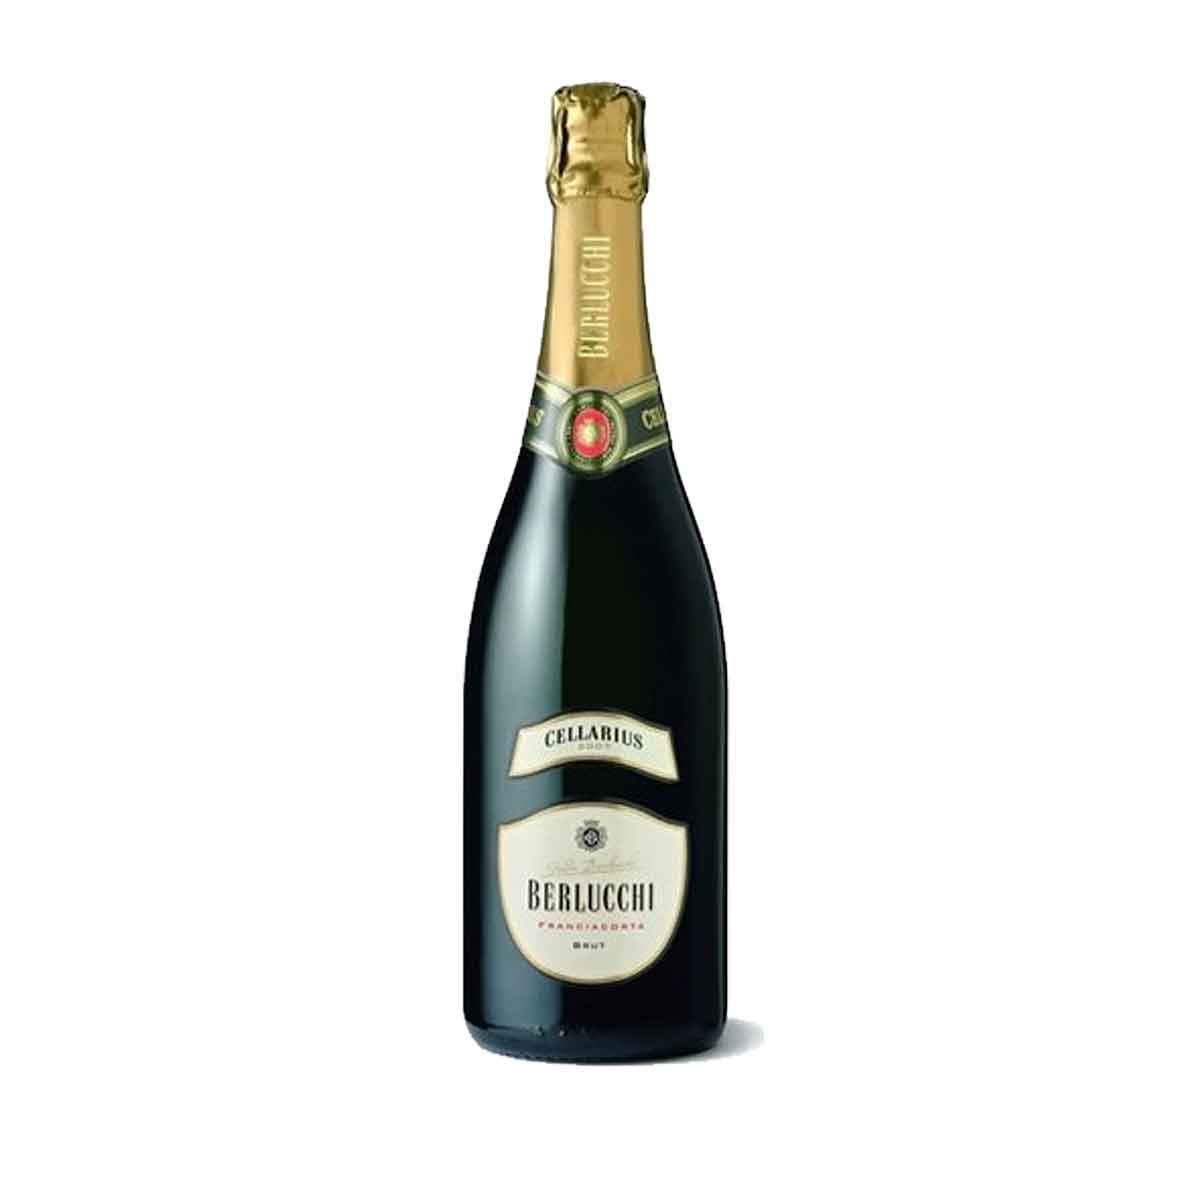 Franciacorta Brut Cellarius - Privilege Wine